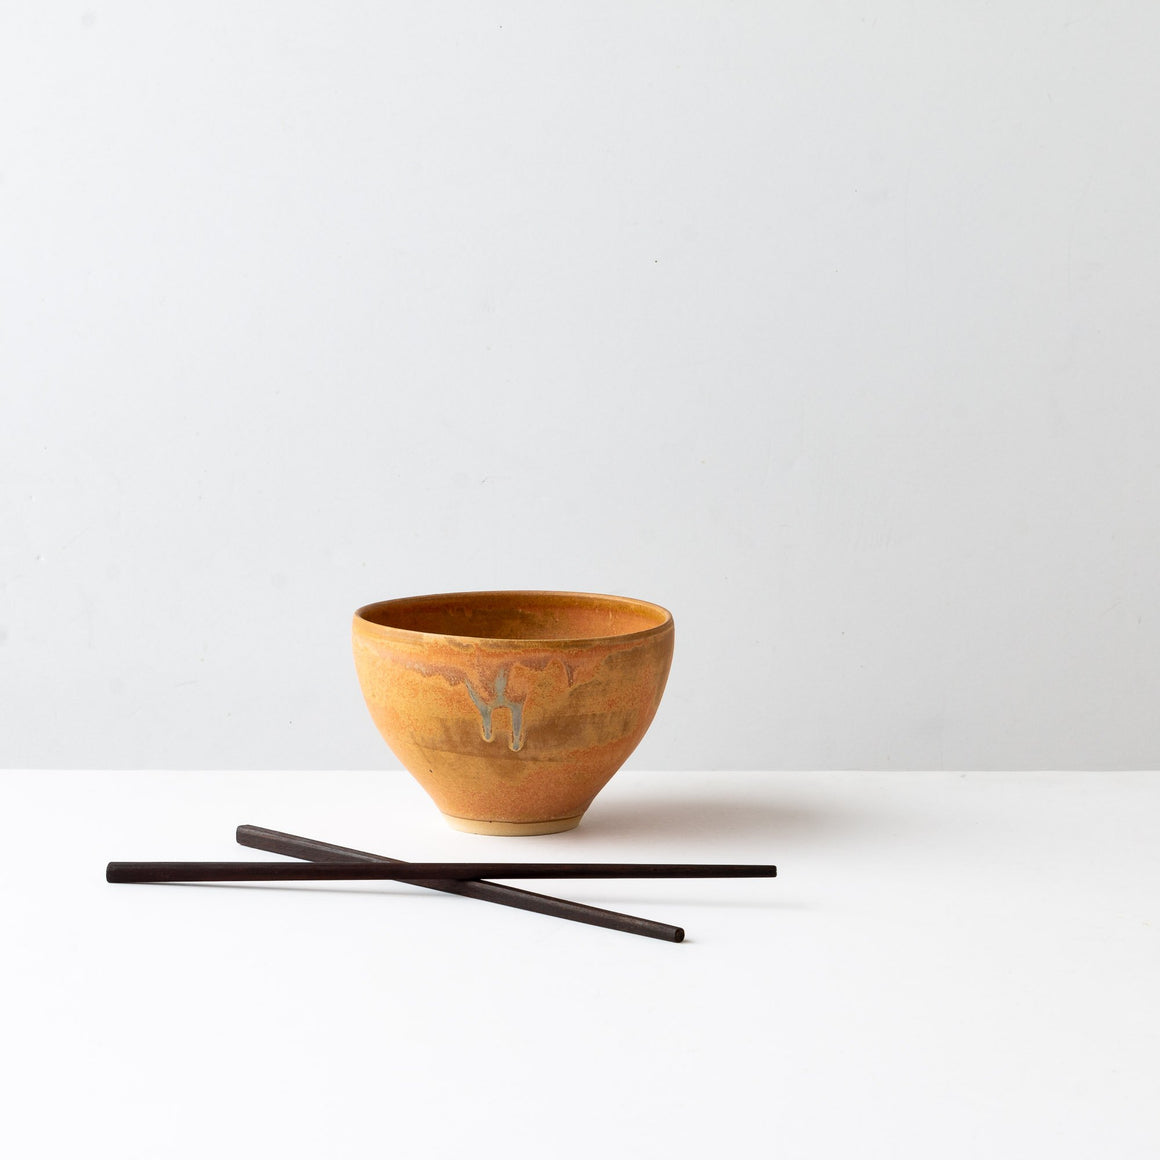 Two Handcrafted Ceramic Stoneware Bowls - Sold by Chic & Basta